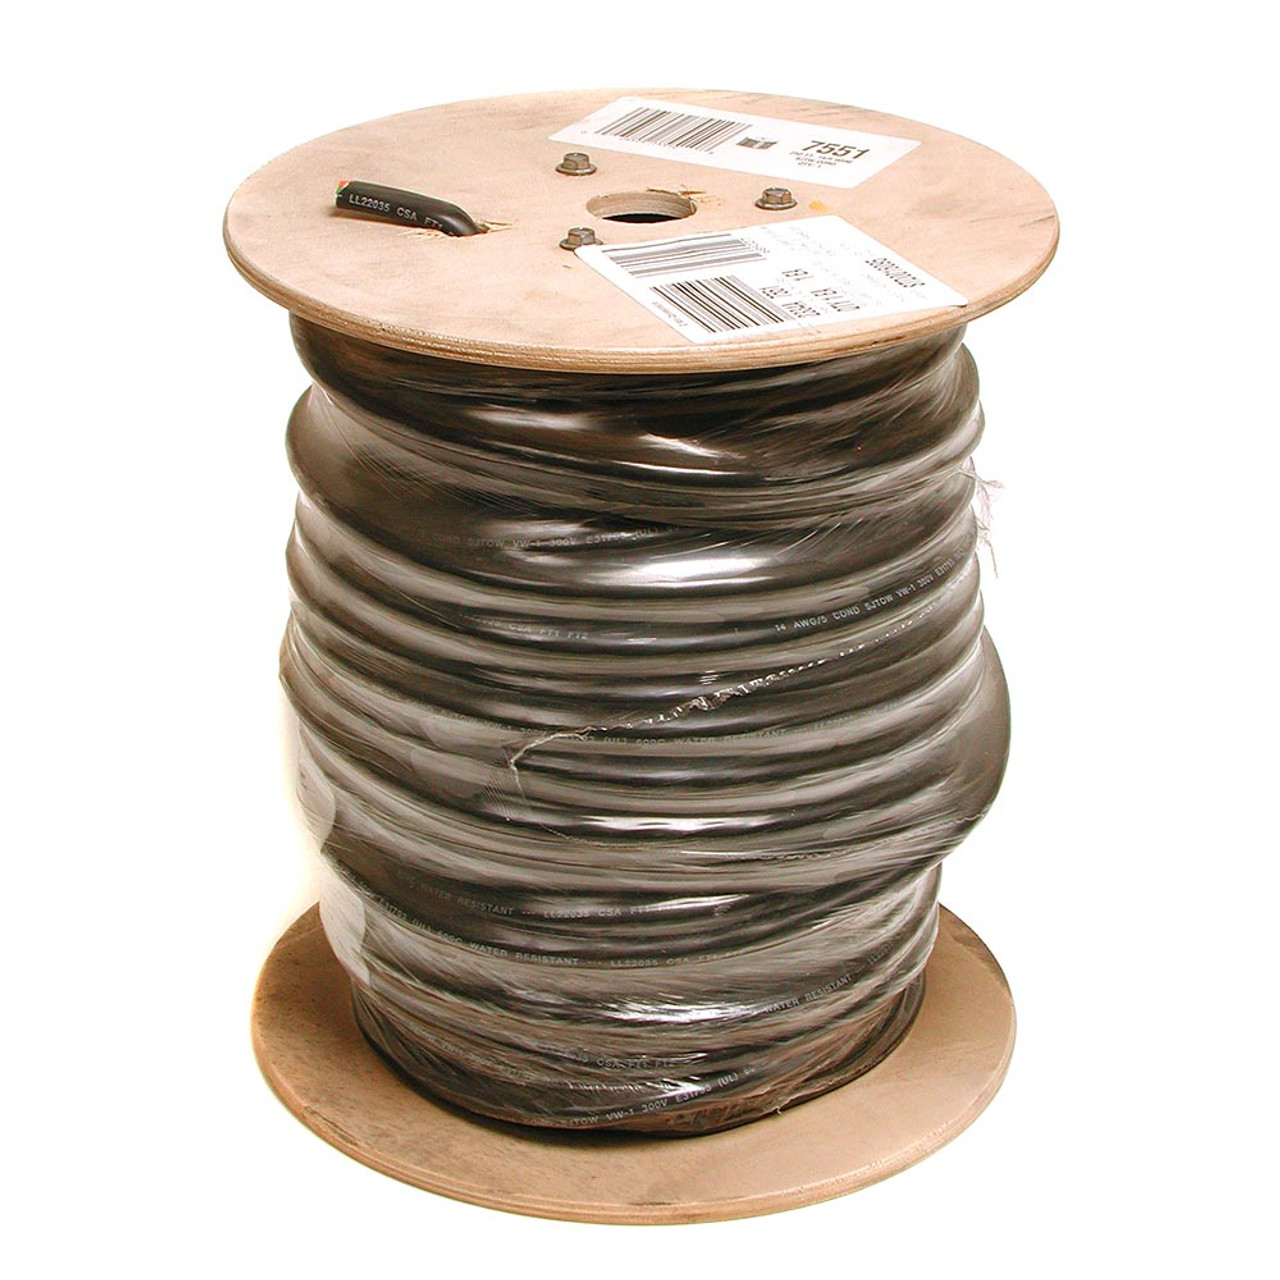 swamp cooler control cable 14 gauge 5 wire order by the footswamp cooler control cable 14 gauge 5 wire order by the foot sjt145